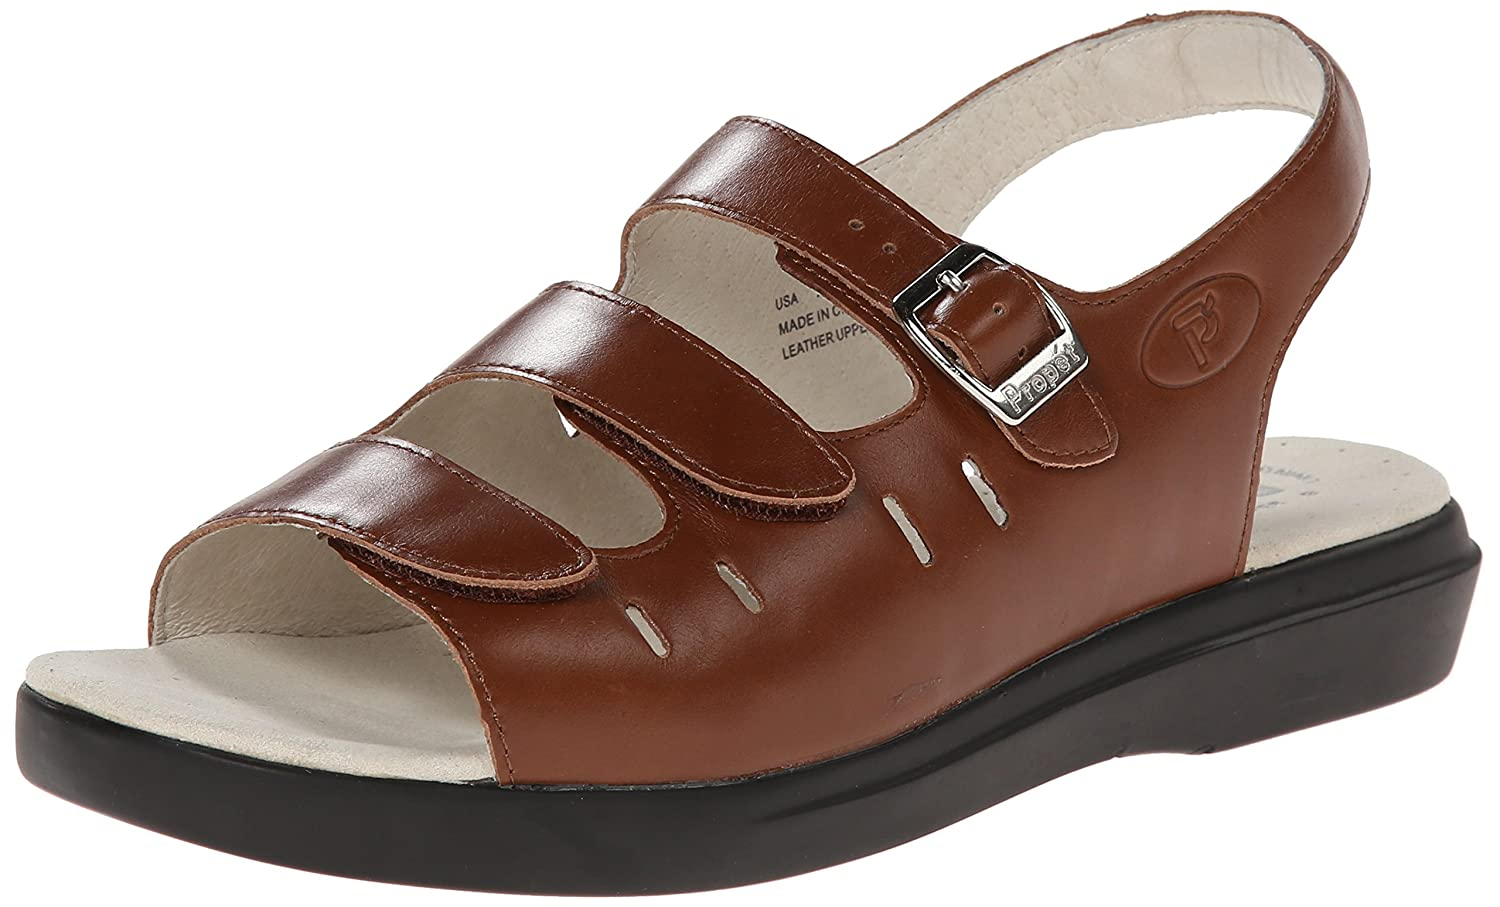 Propet Women's W0001 Breeze Walker Sandal B000XJHIN0 9 W (US Women's 9 D)|Teak Brown